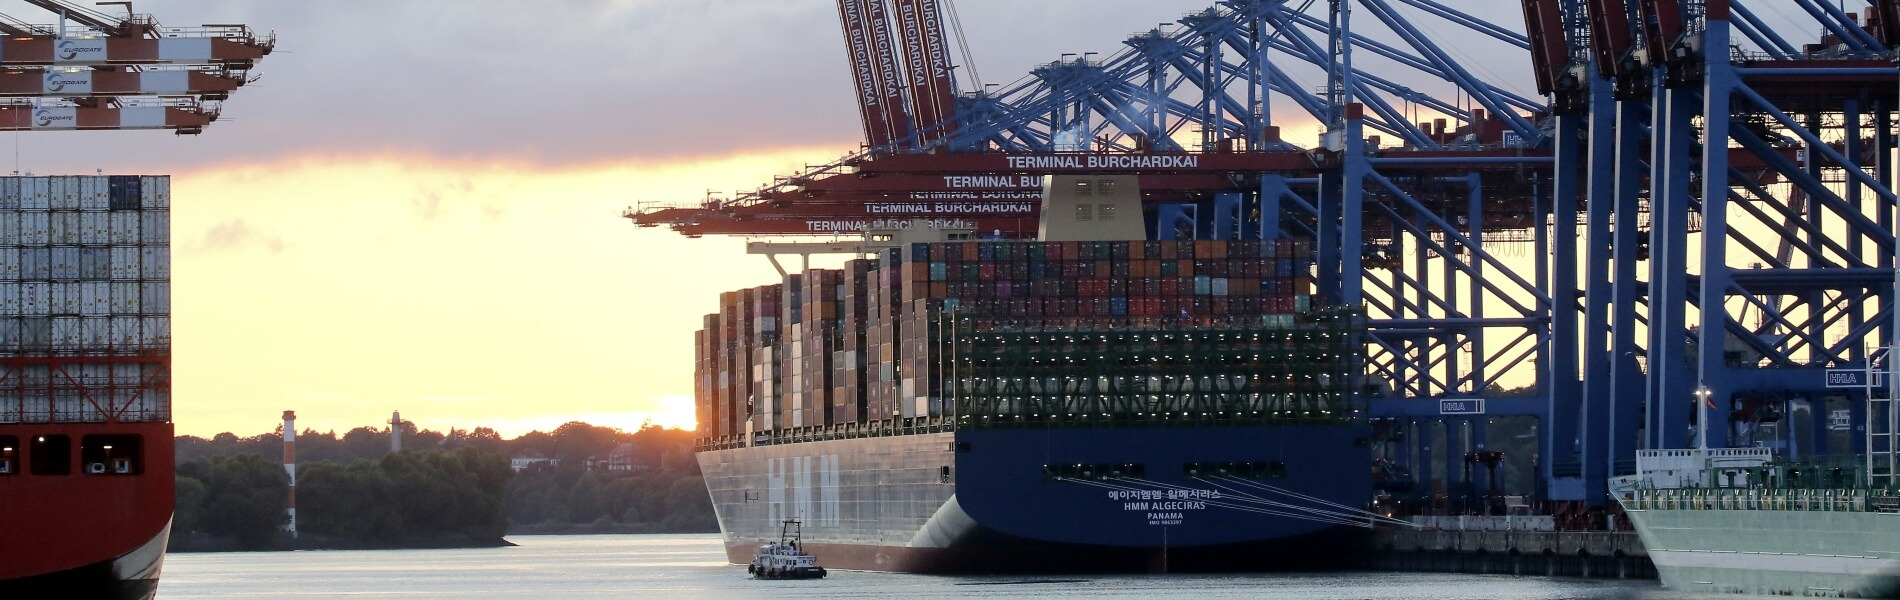 Even a bit bigger: Container ships are growing and growing